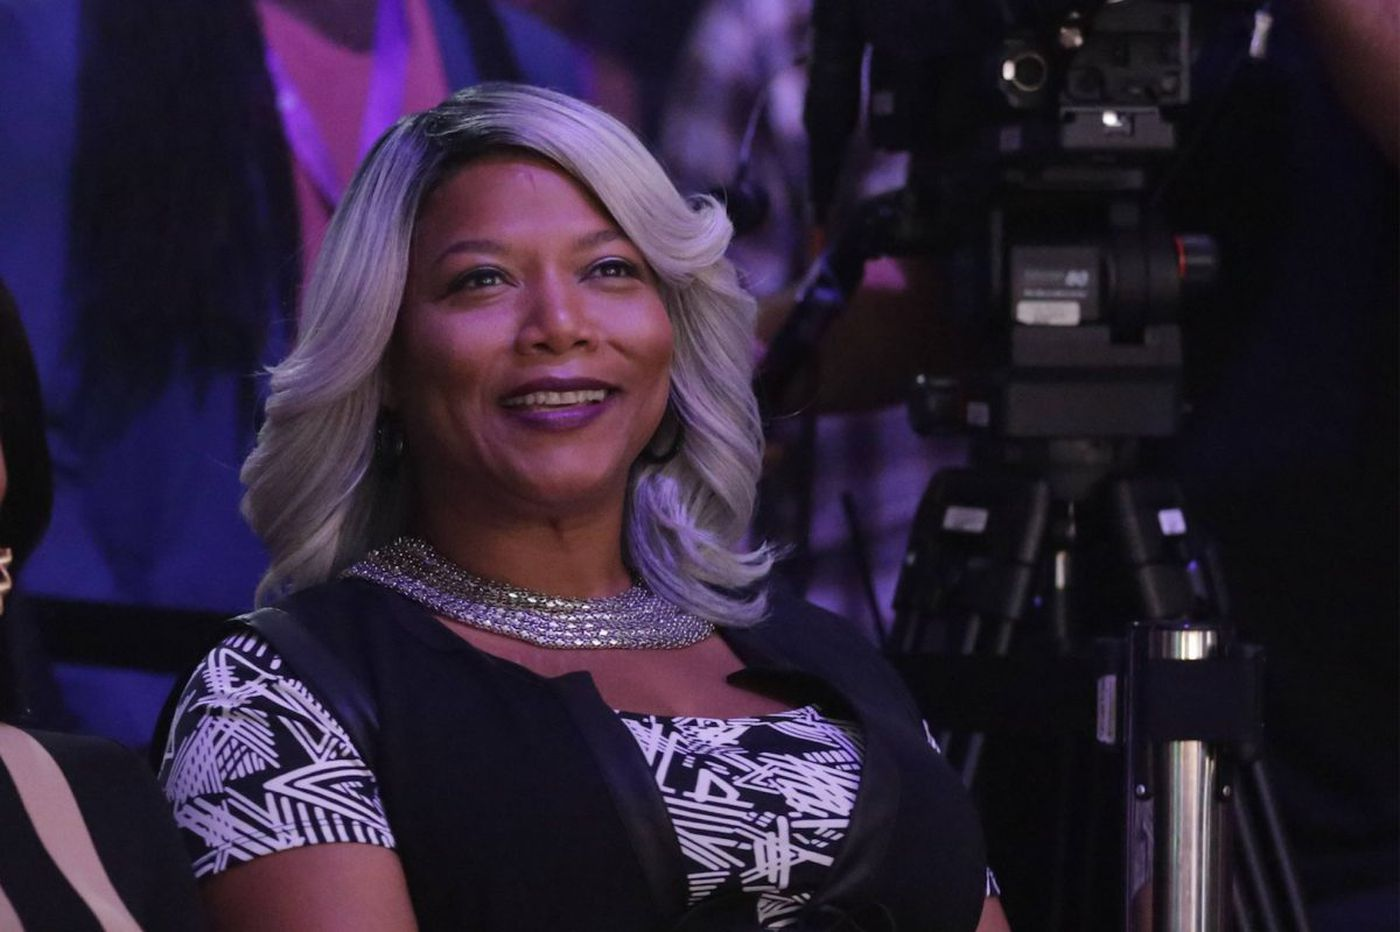 Queen Latifah, Anita Hill to speak at Rutgers commencement ceremonies